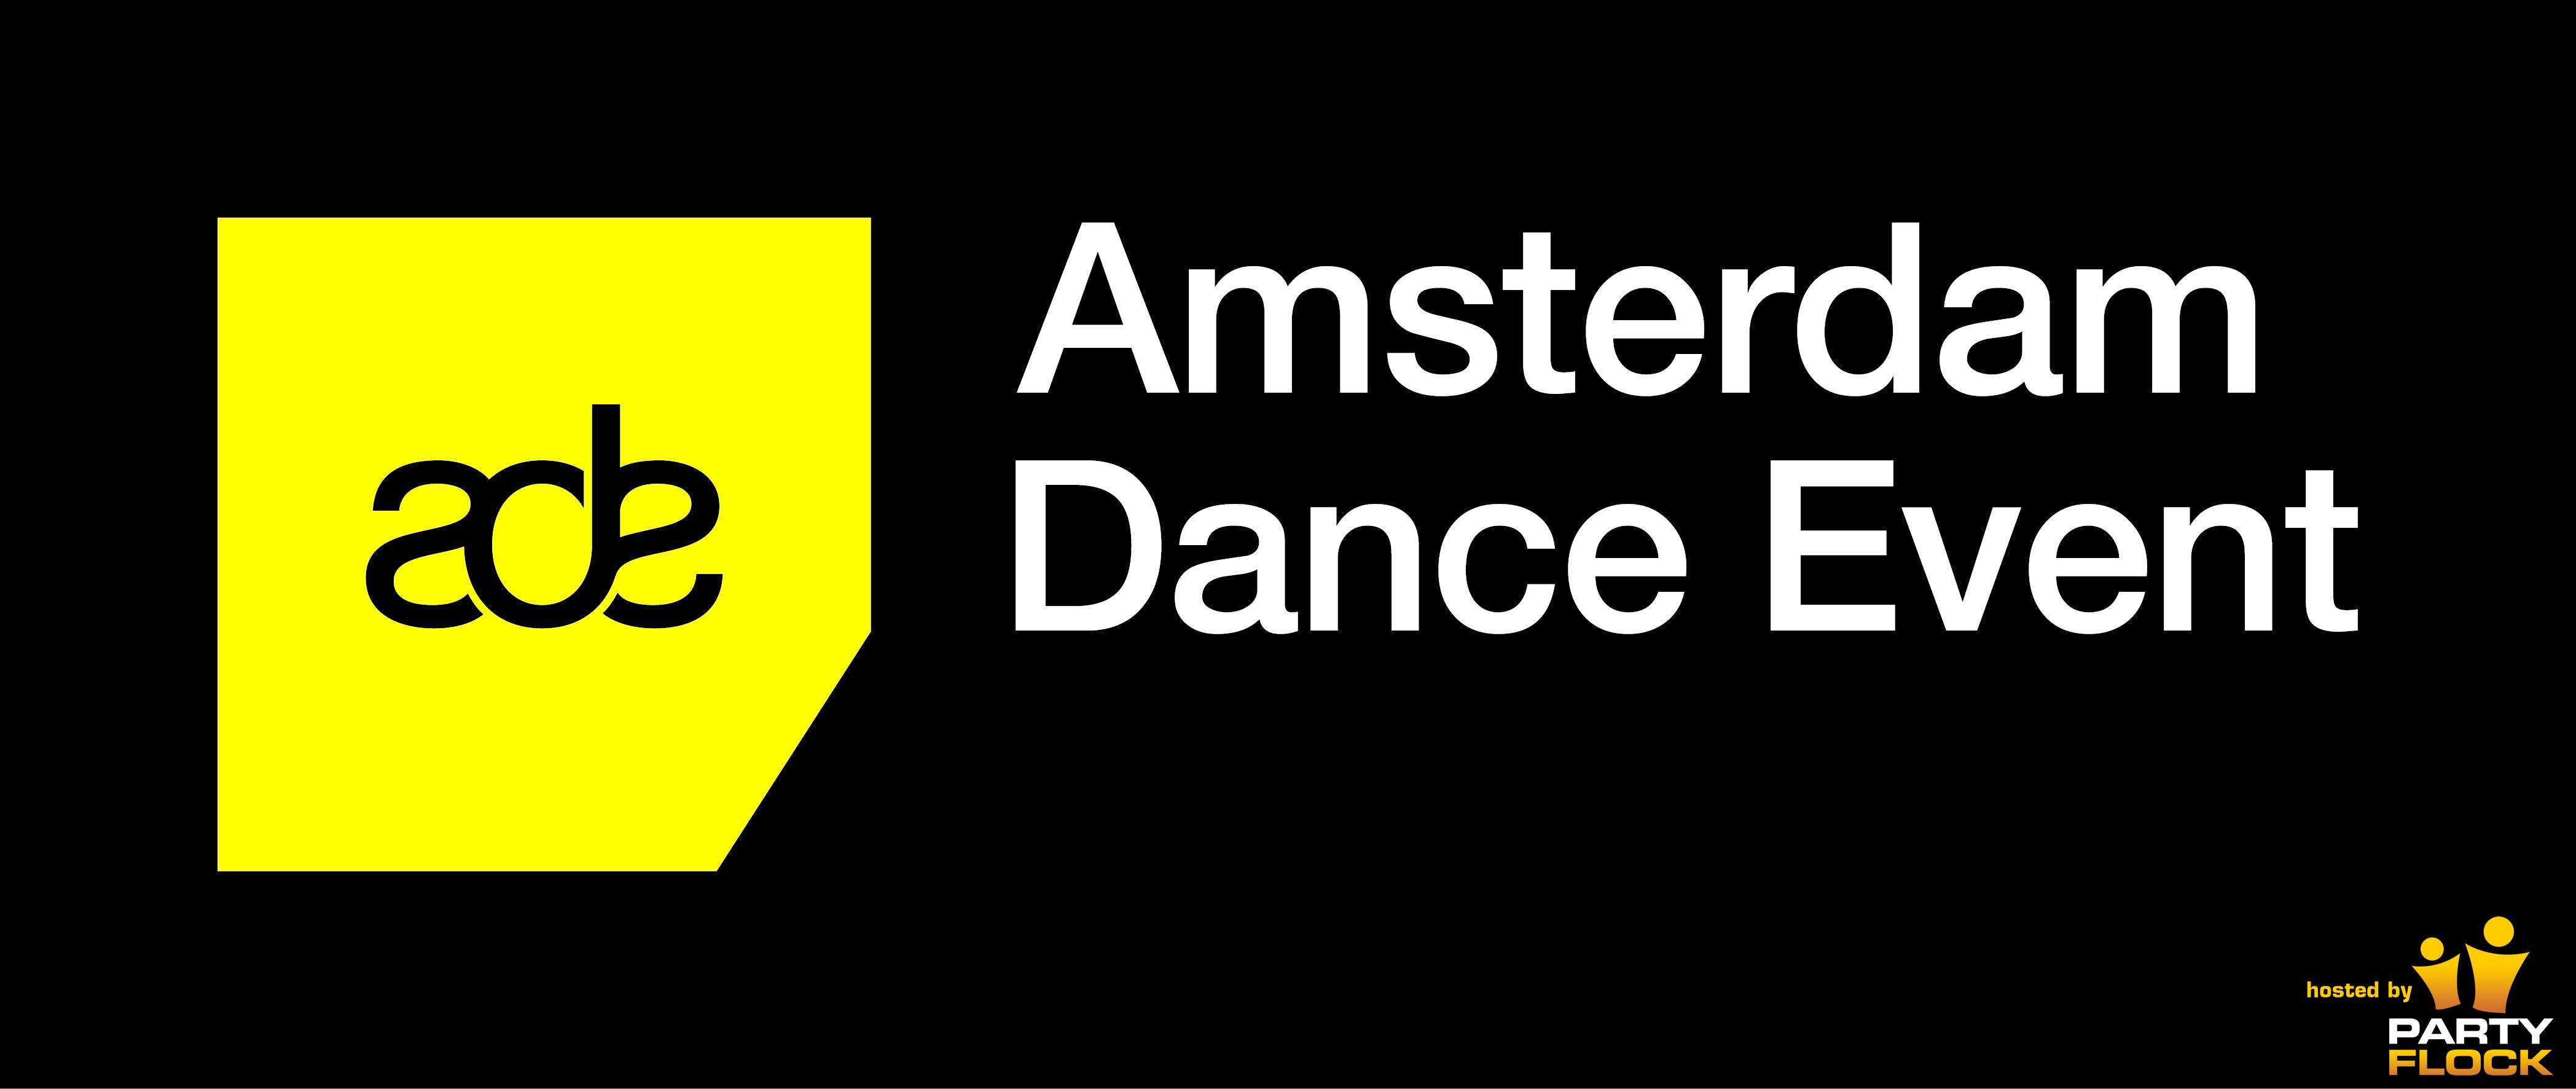 Amsterdam Dance Event 2014: Where to go?